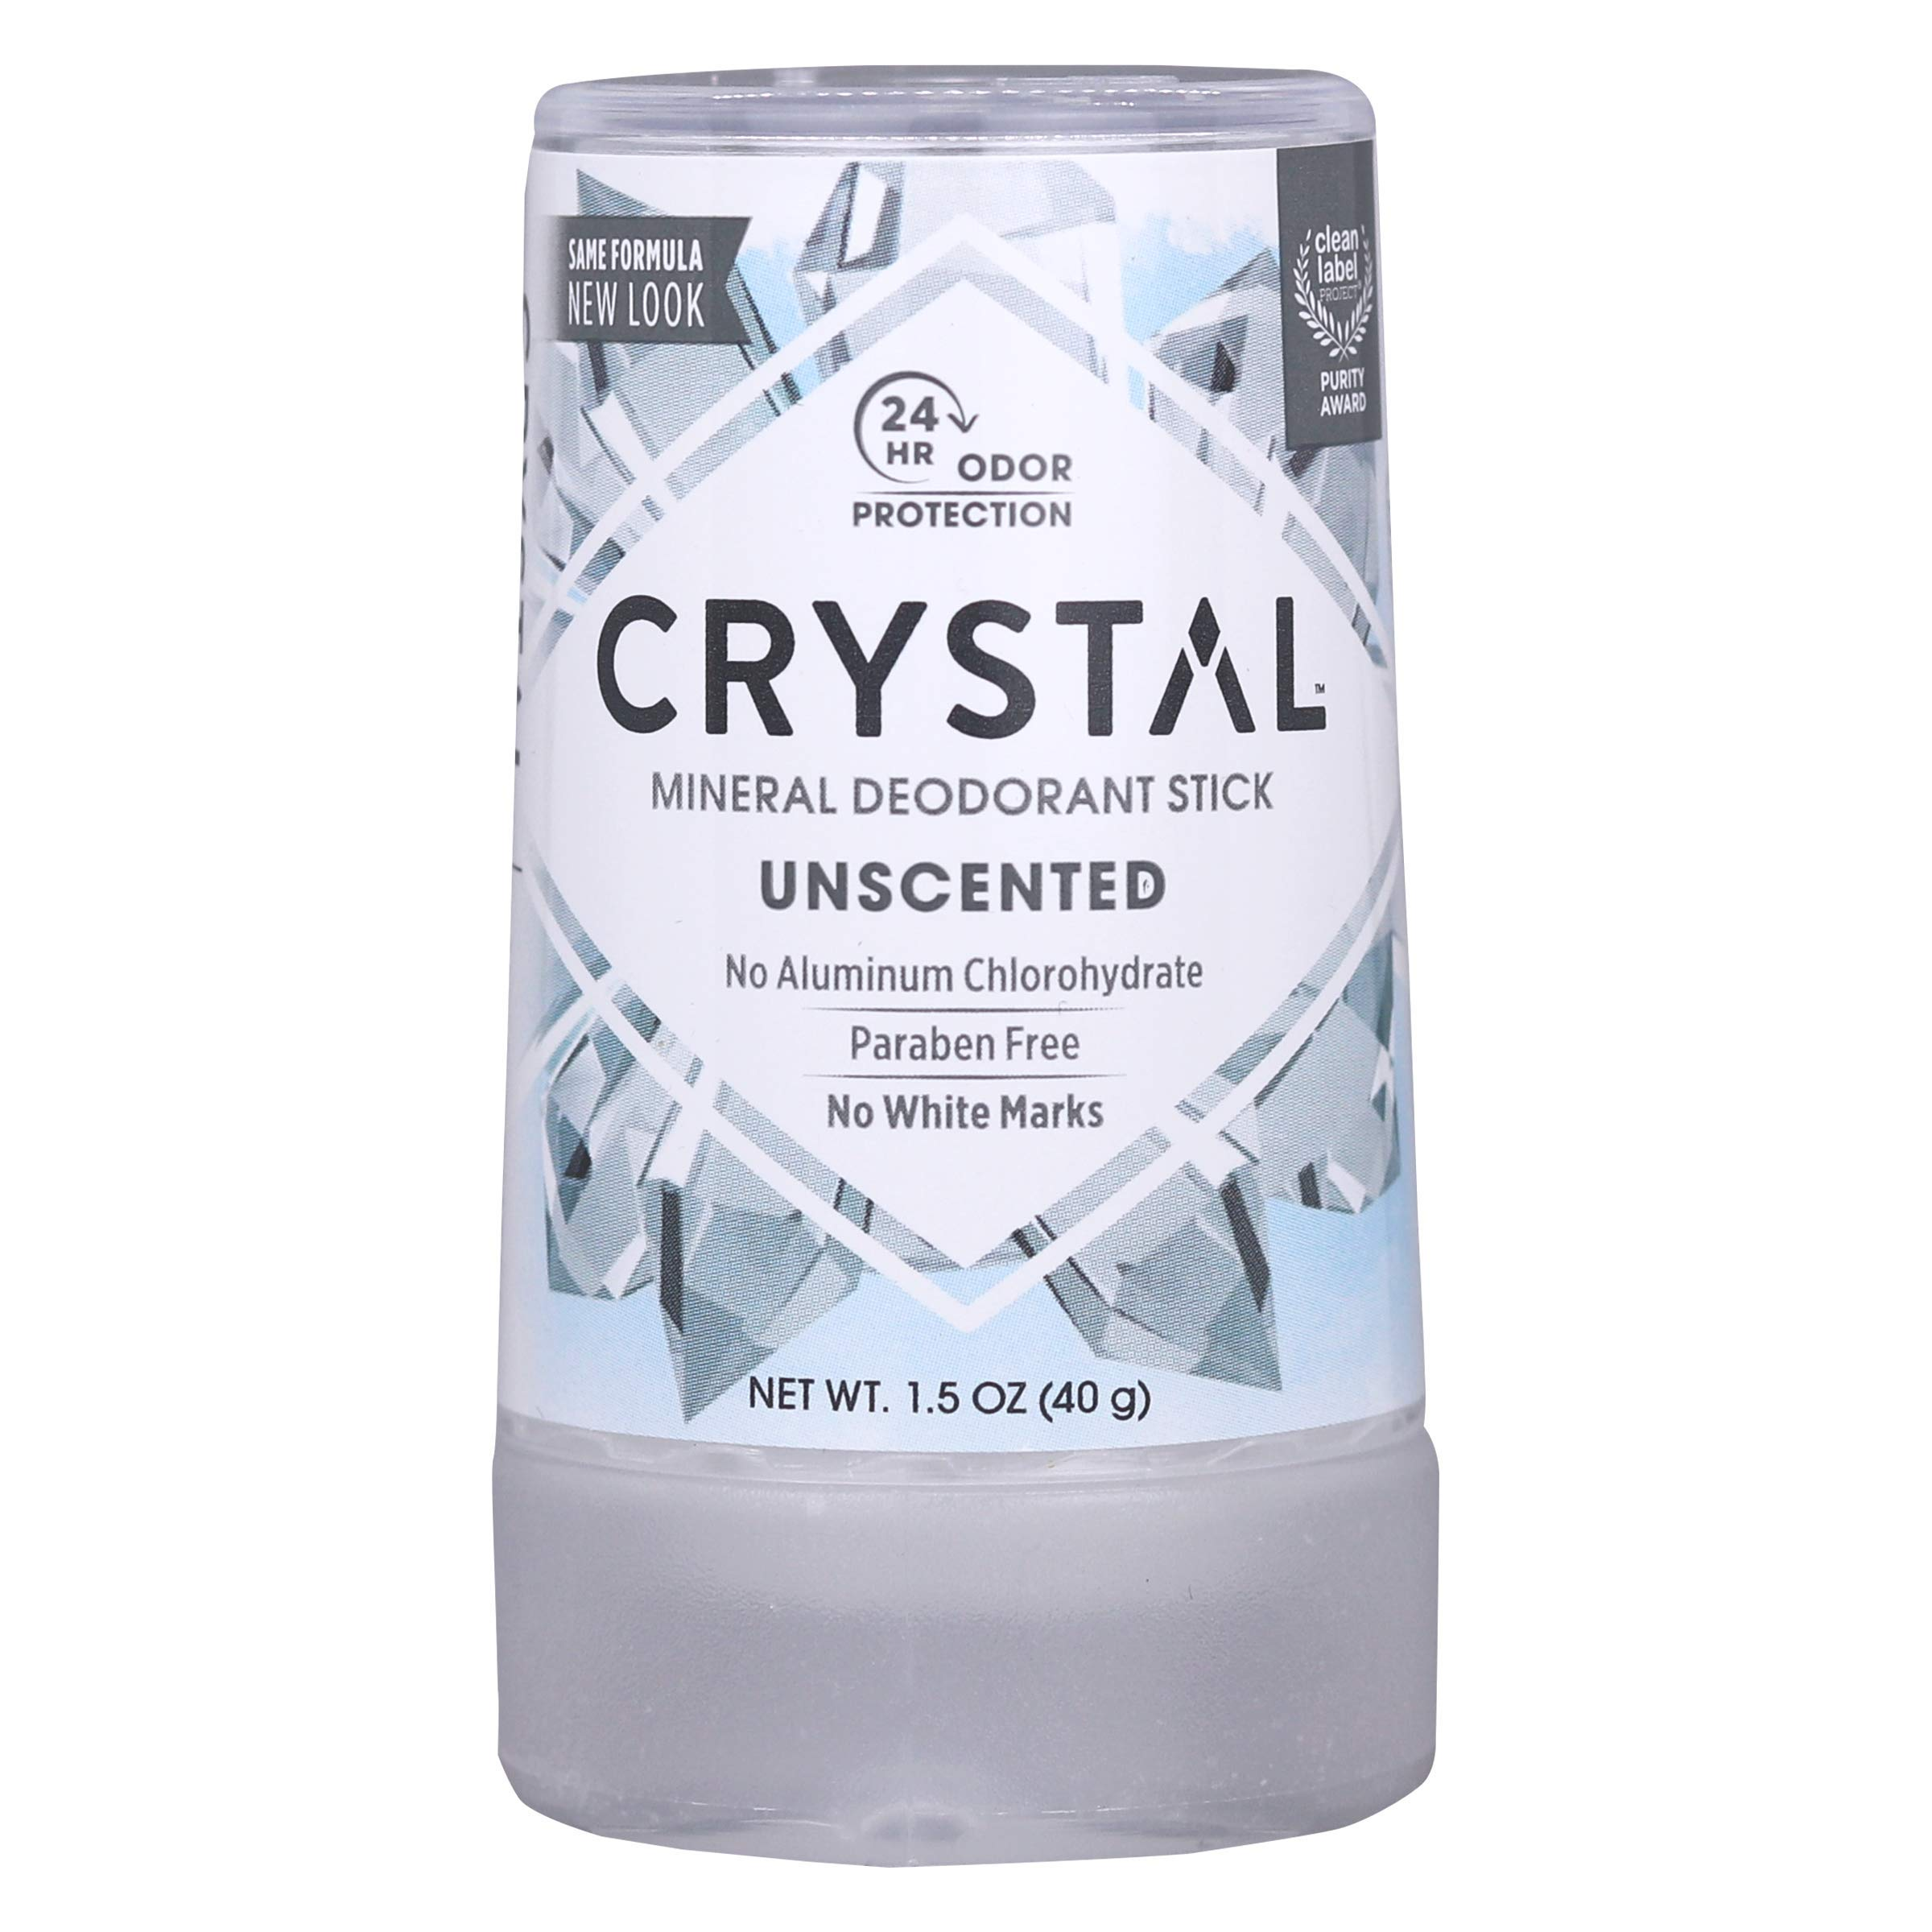 CRYSTAL Deodorant Mineral Deodorant Stick, Travel, 1.5 Ounce